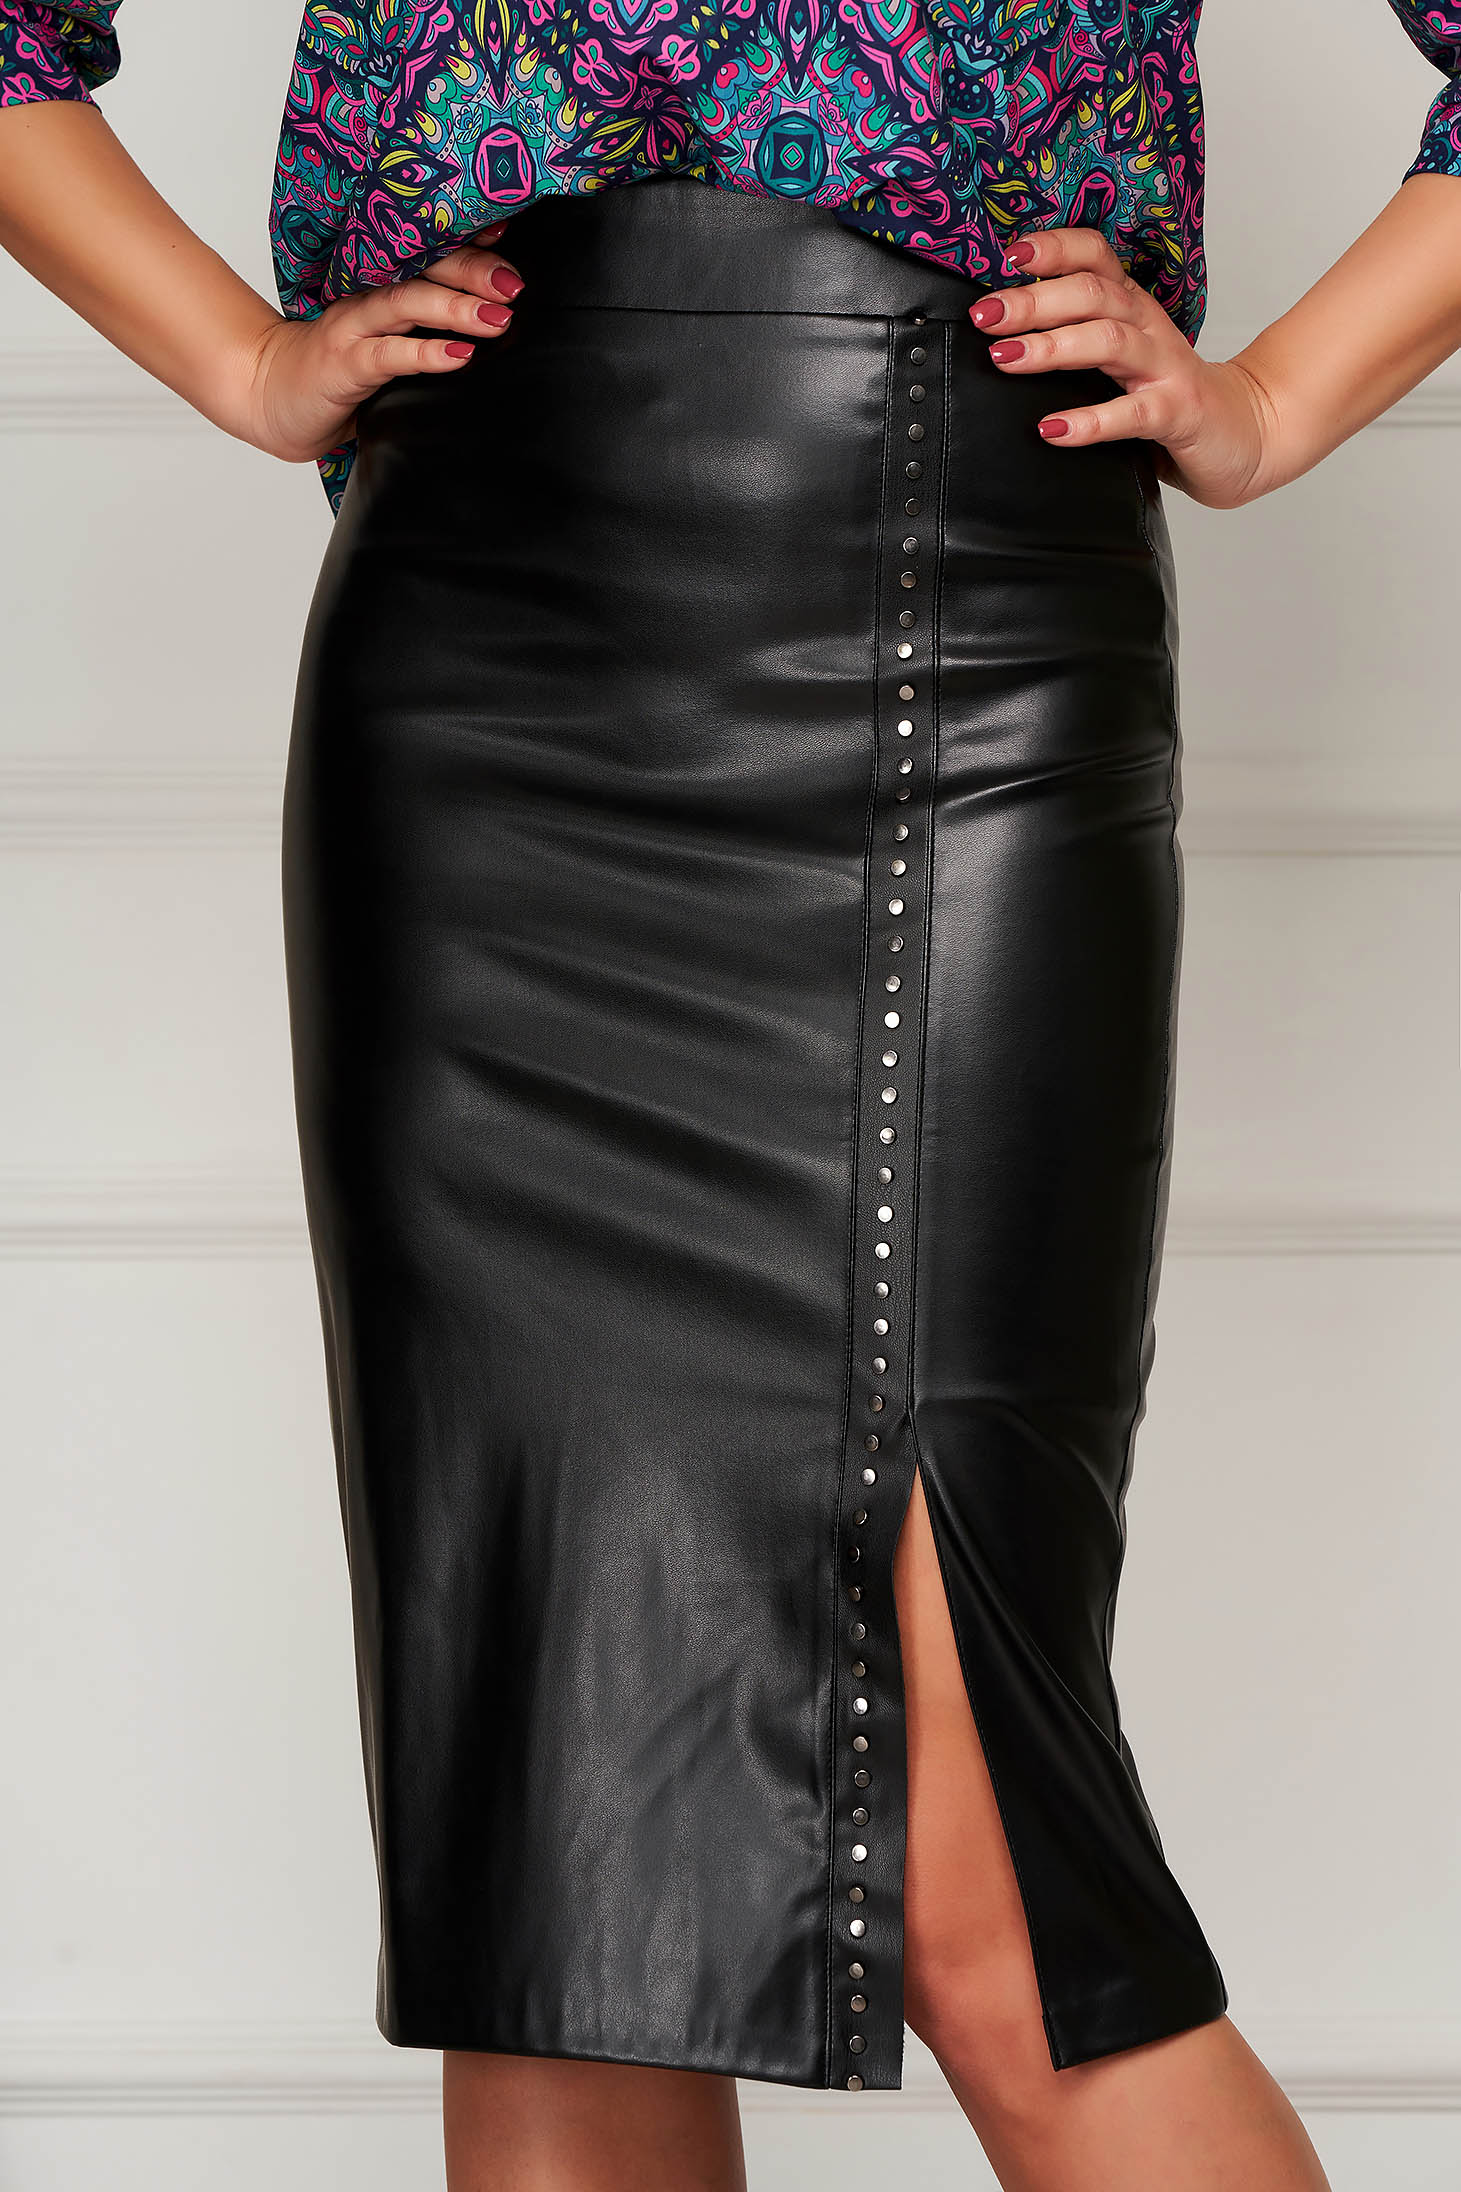 Skirt black pencil midi elegant from ecological leather golden metallic details high waisted